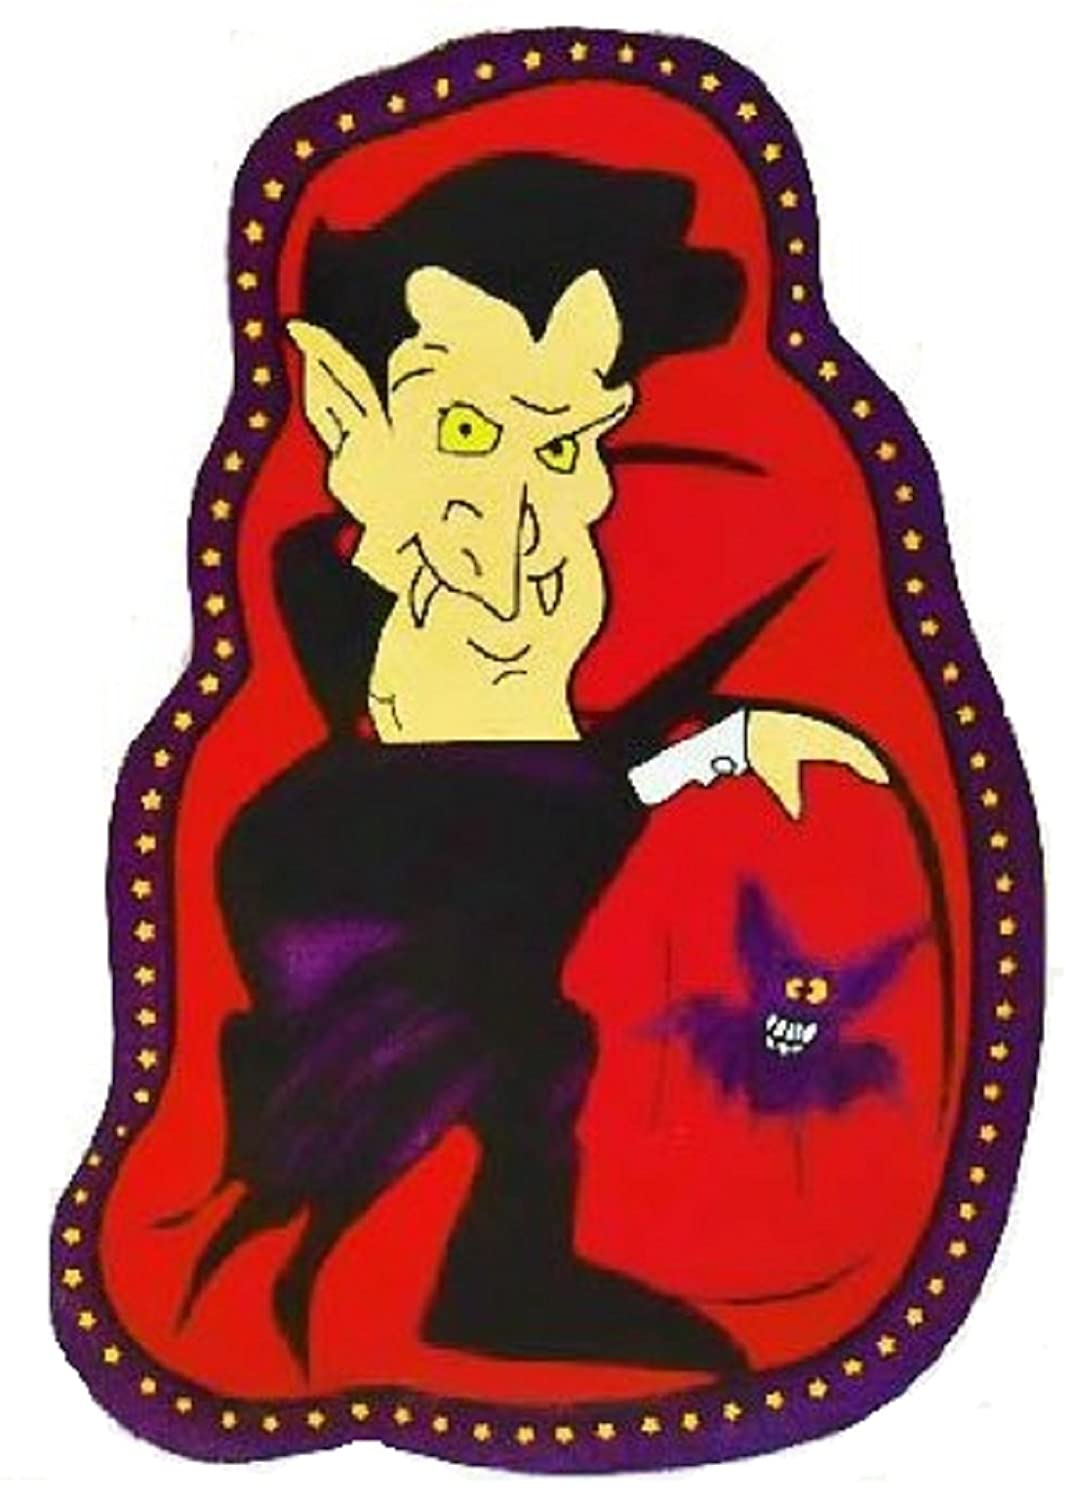 Halloween Serving Dish - Dracula Food and Snack Serveware Fox Run SRV-DRAC